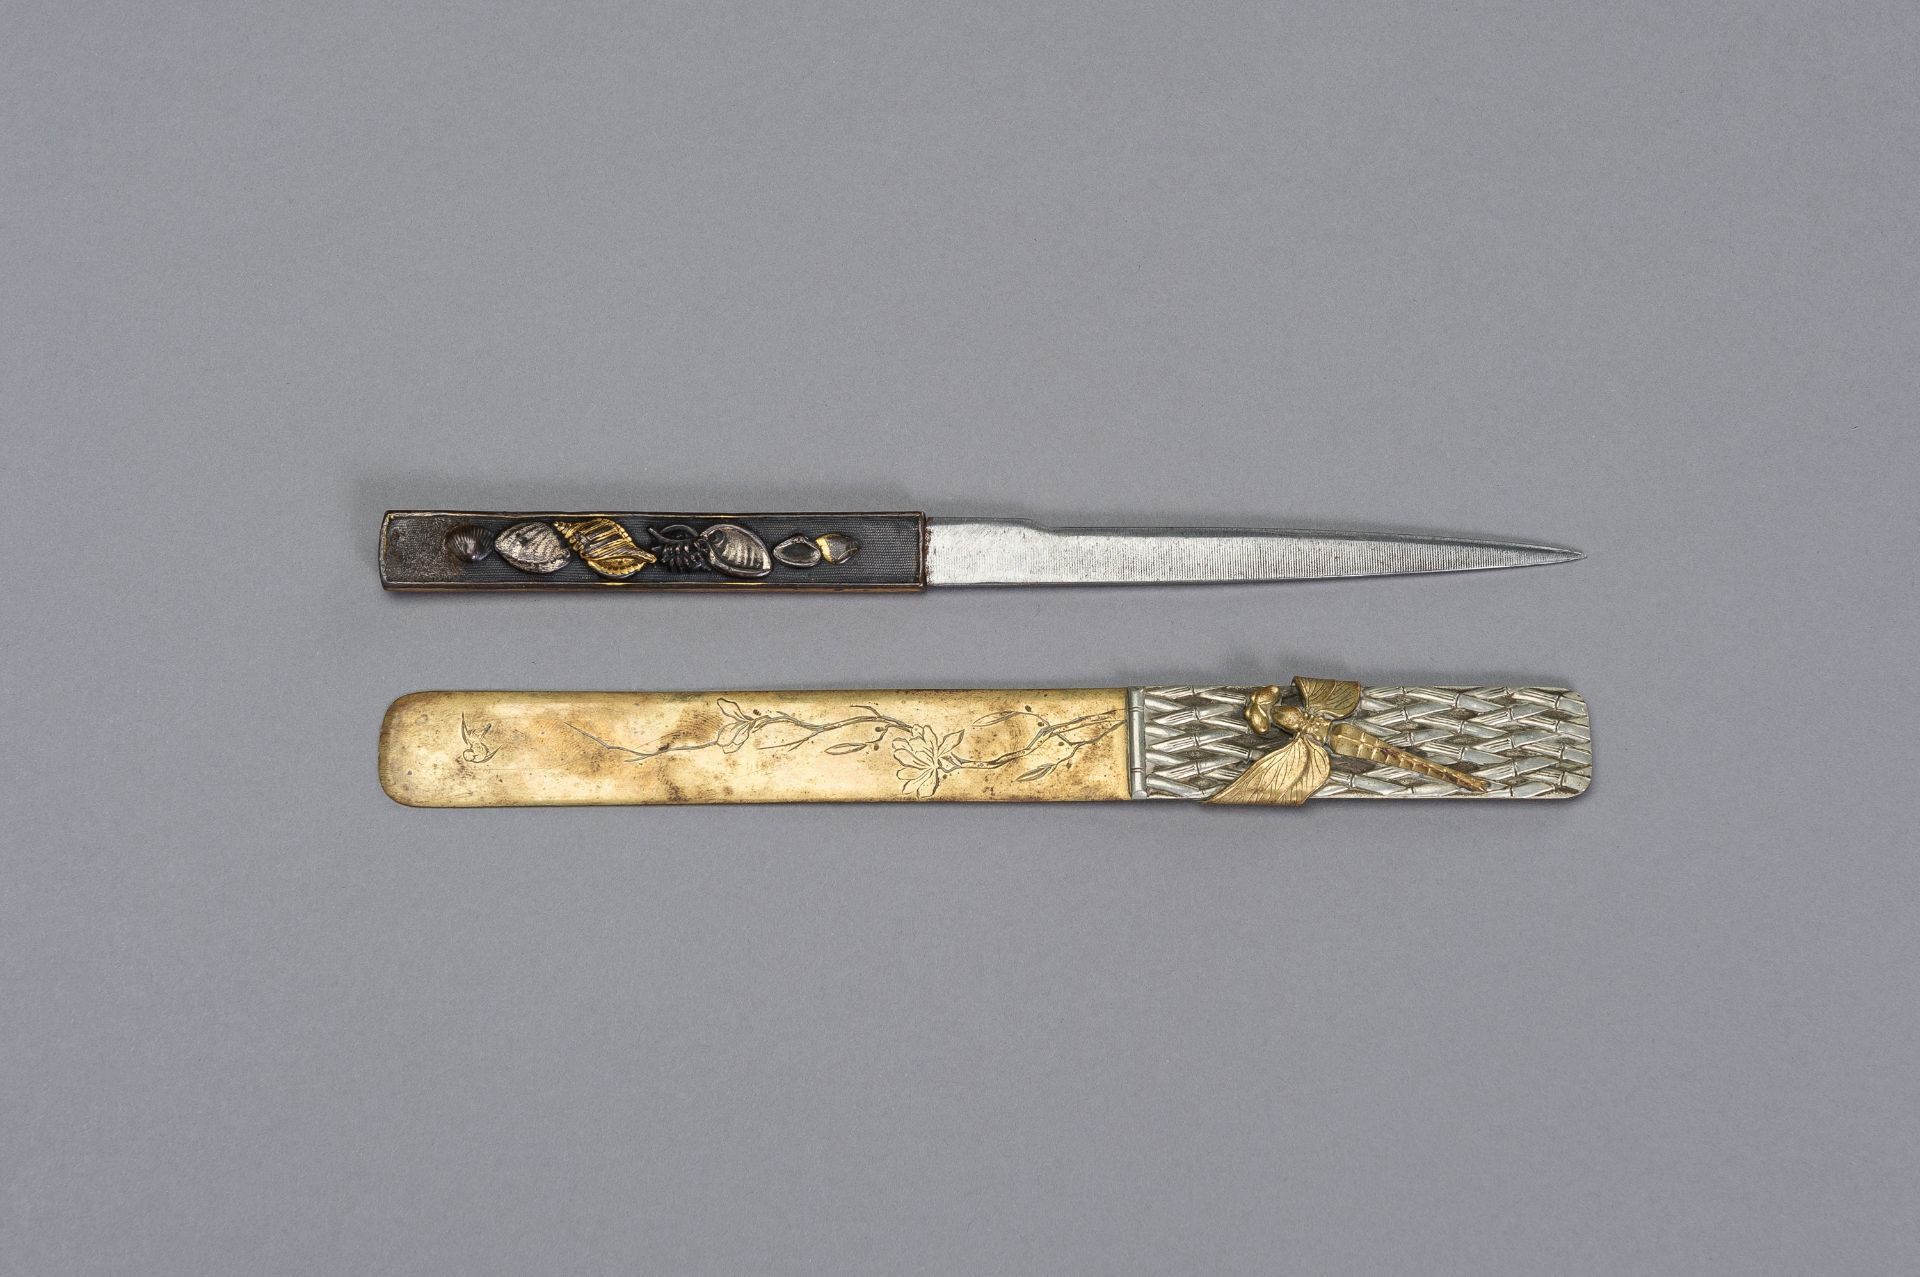 A COPPER KOZUKA WITH BLADE AND A SENTOKU PAGE TURNER WITH DRAGONFLY - Image 4 of 7